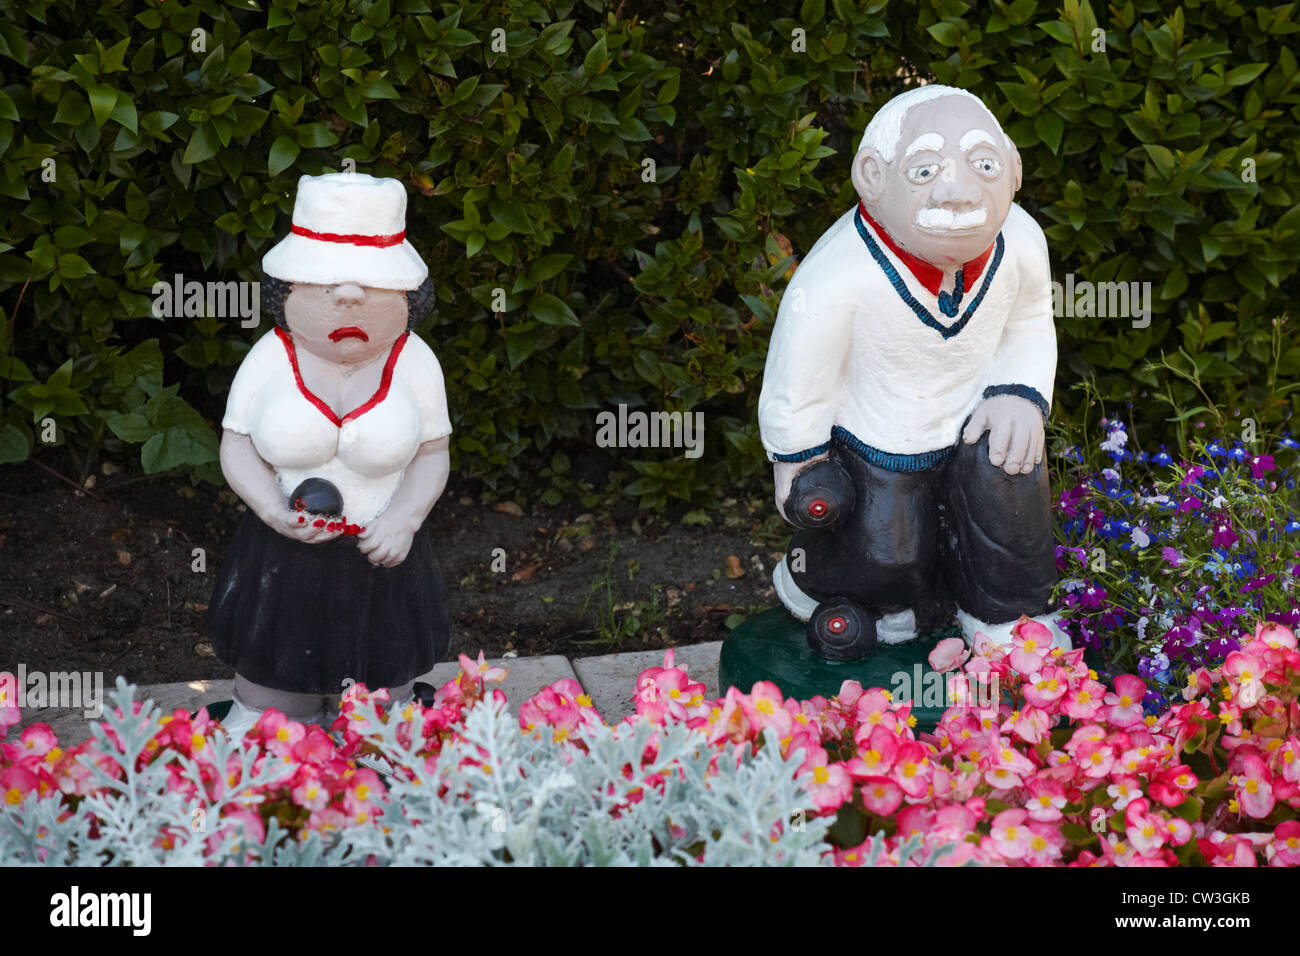 Bowlers Garden Ornaments Positioned In Flower Bed At Bowling Club